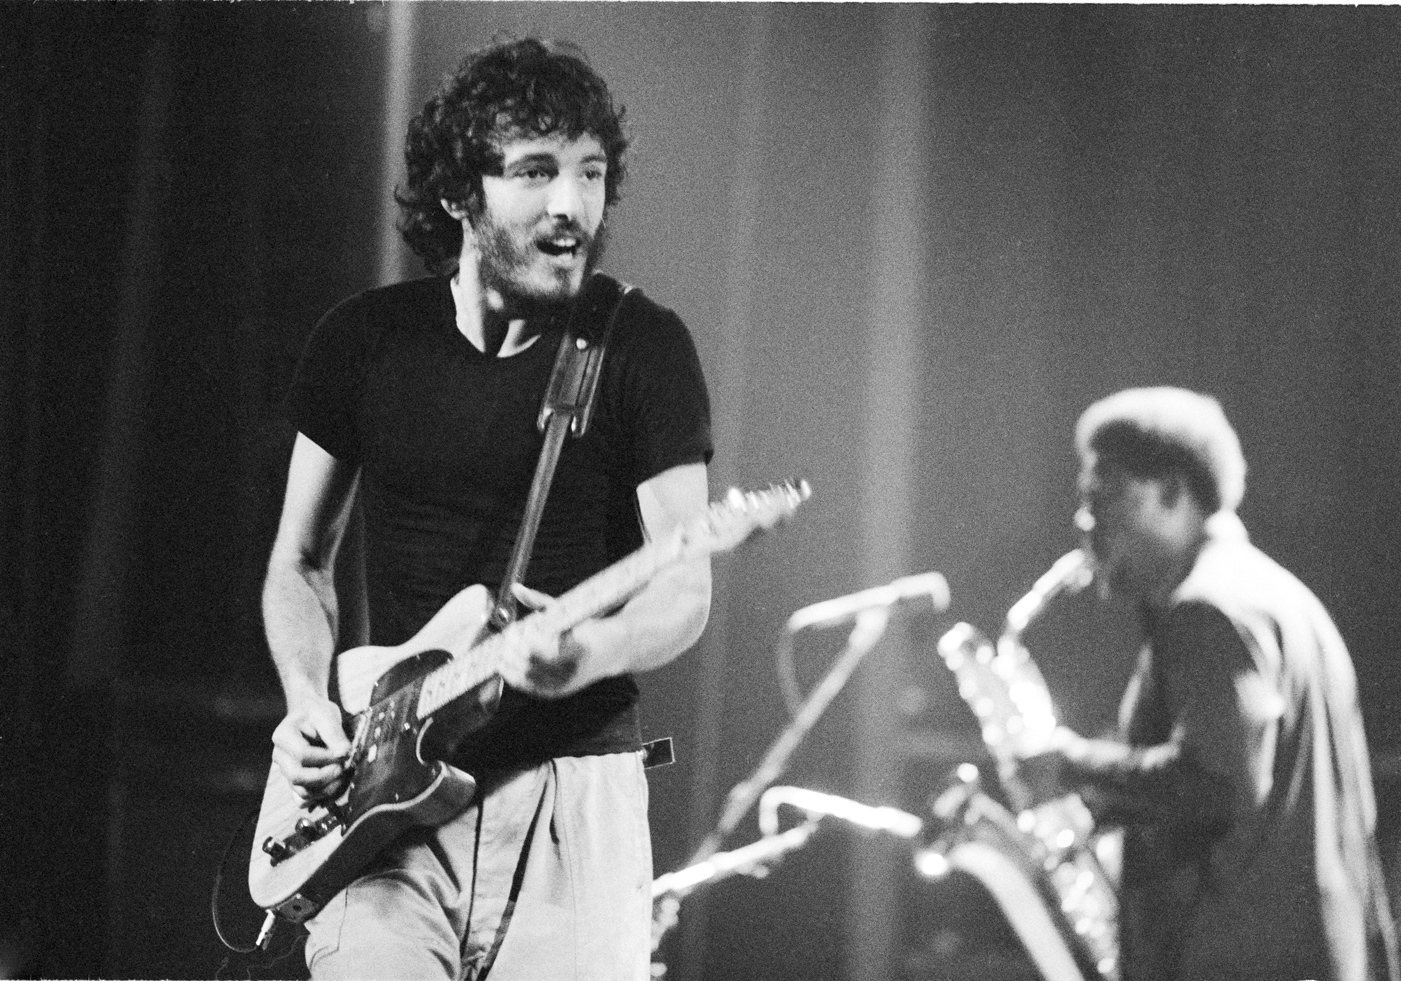 Bruce Springsteen on Making 'Born to Run': 'We Went to Extremes'